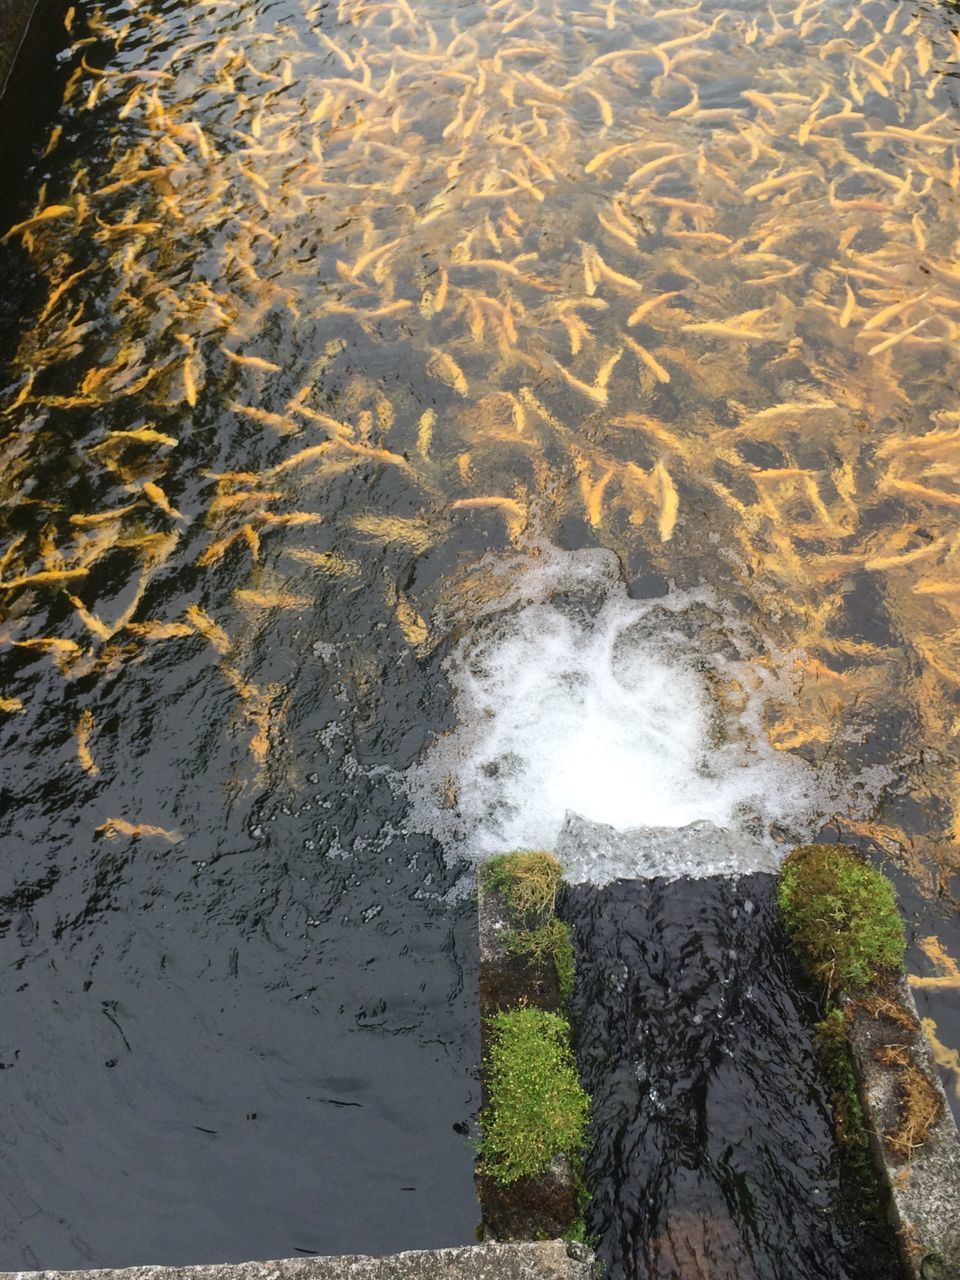 School Of Fish Swimming In Small Pond